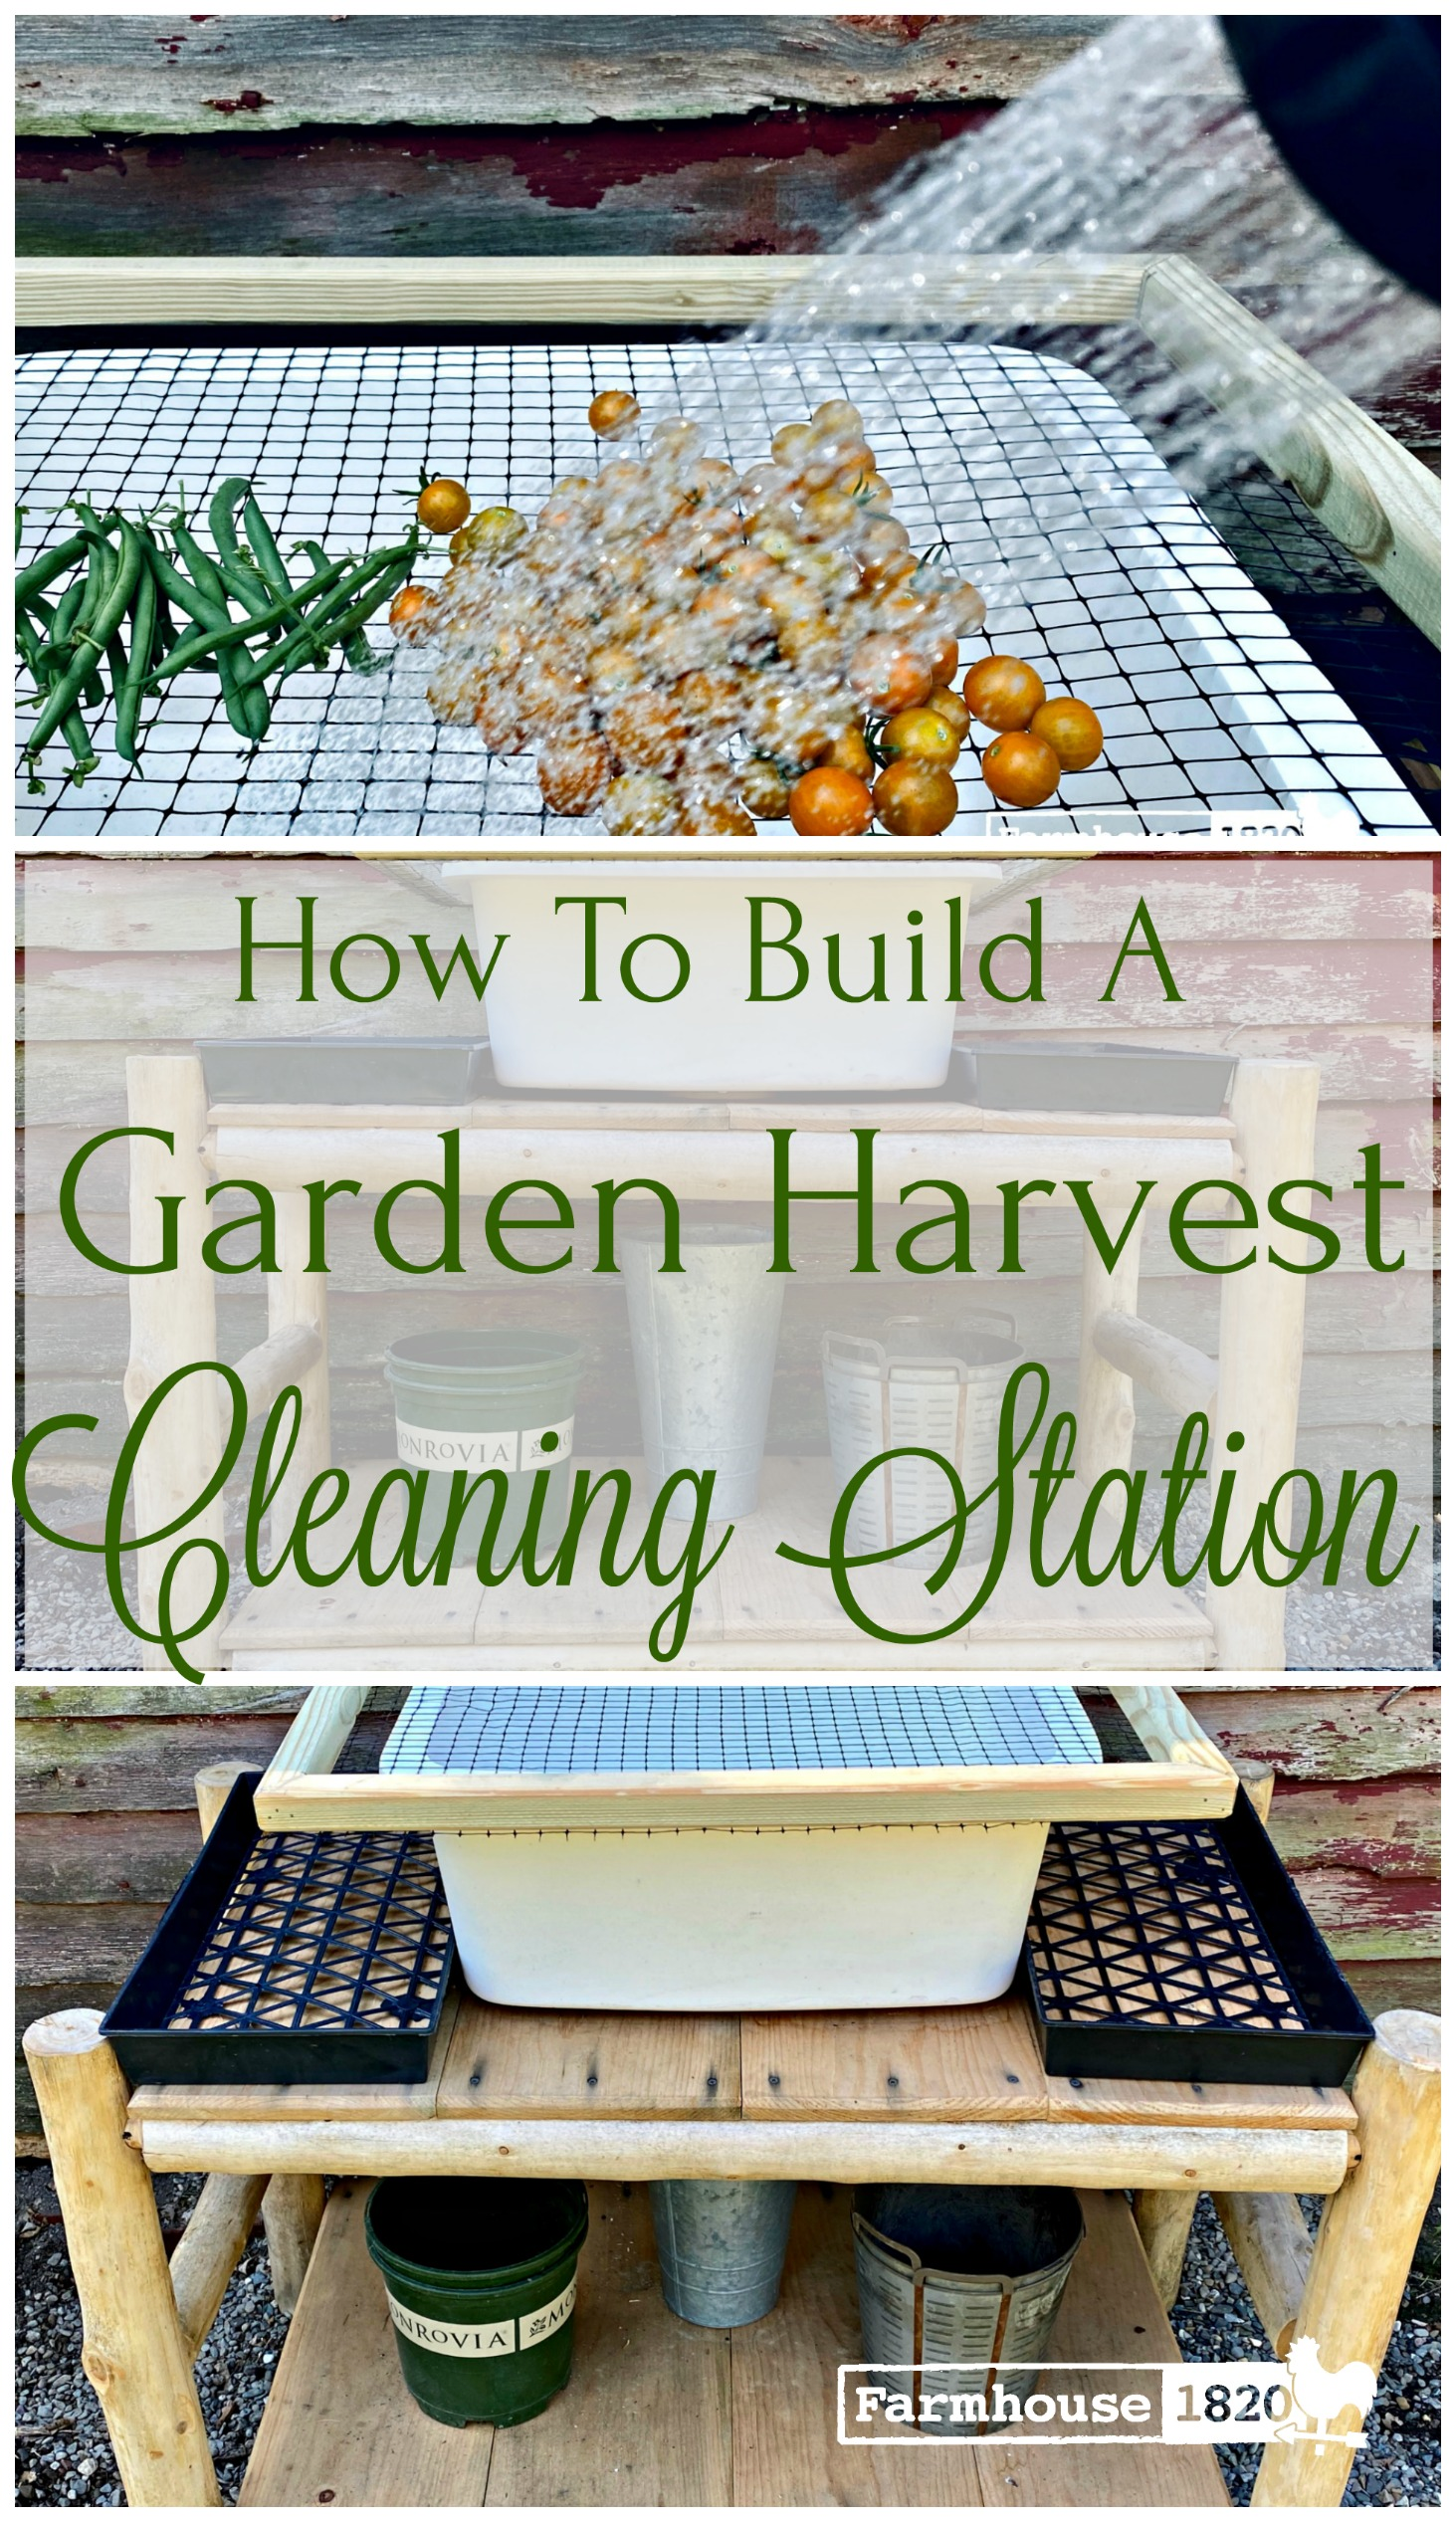 Pinterest - garden harvest cleaning station